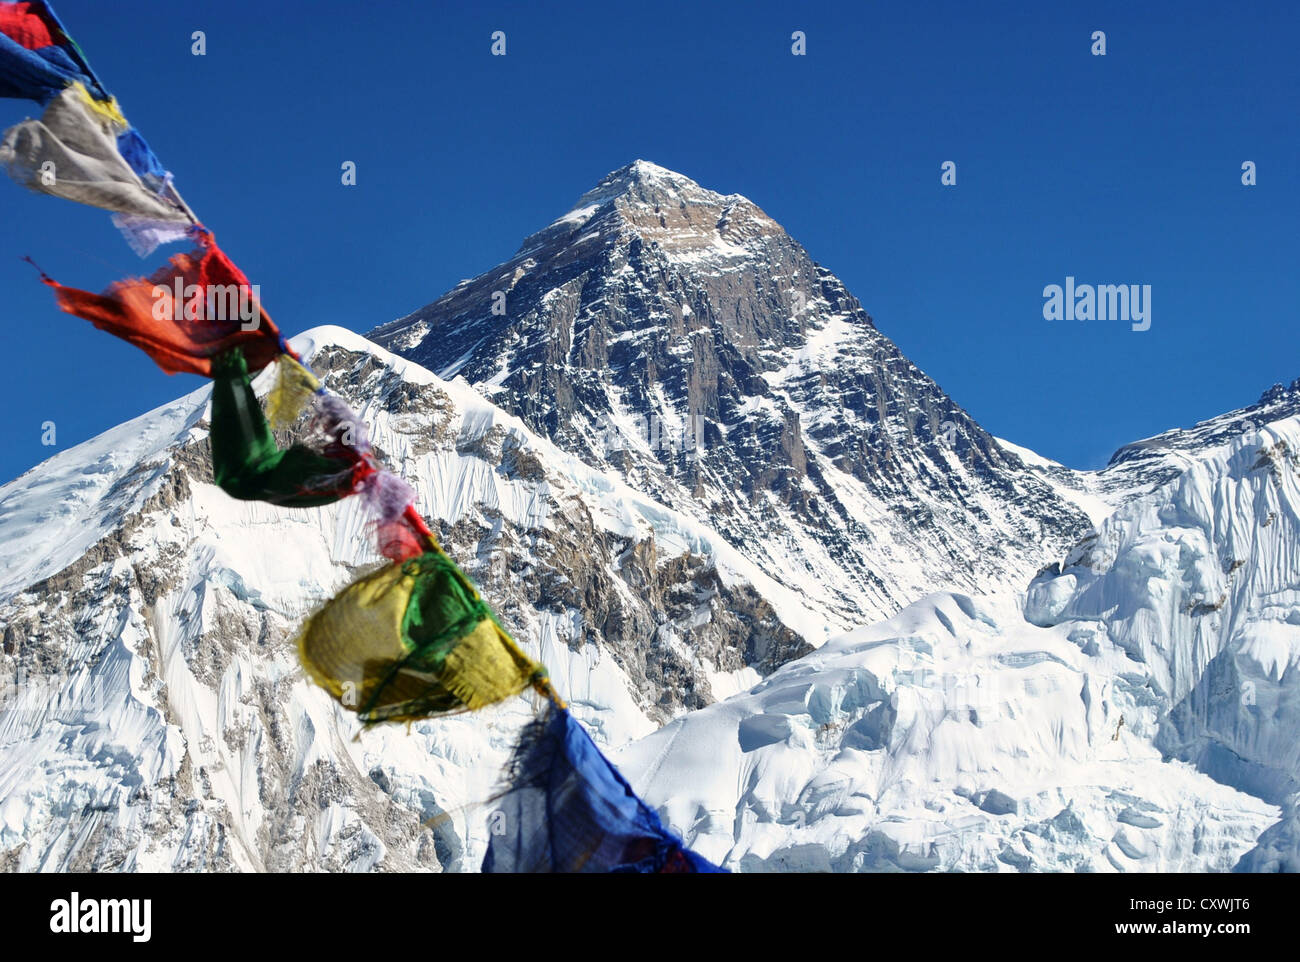 View of Mount Everest with blue sky backdrop and Buddhist prayer flags in foreground - Stock Image